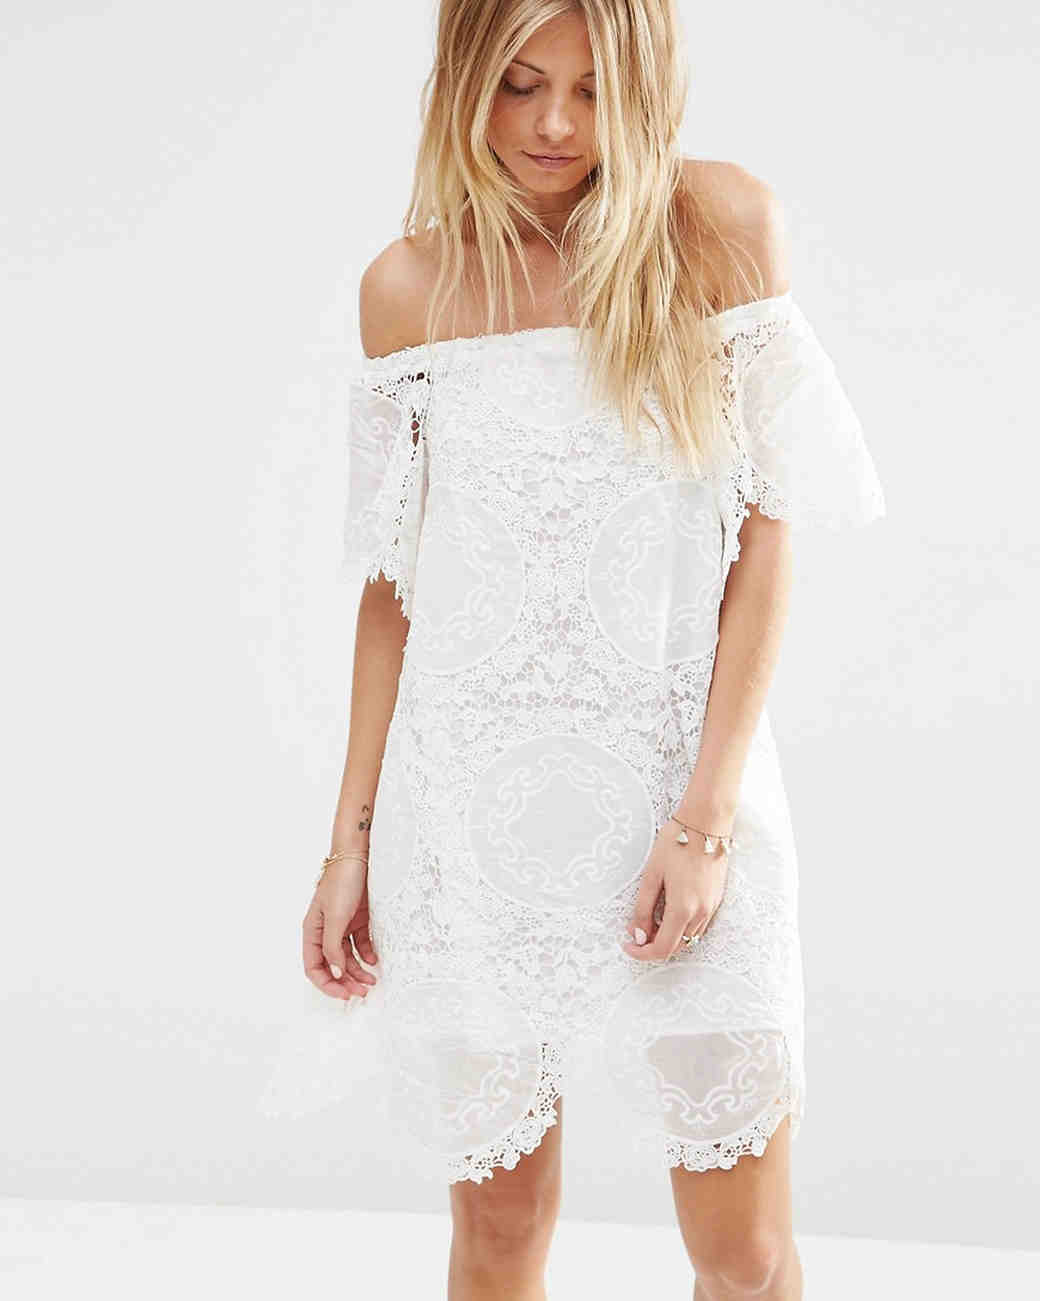 bridal-shower-dress-asos-off-the-shoulder-lace-dress-0416.jpg